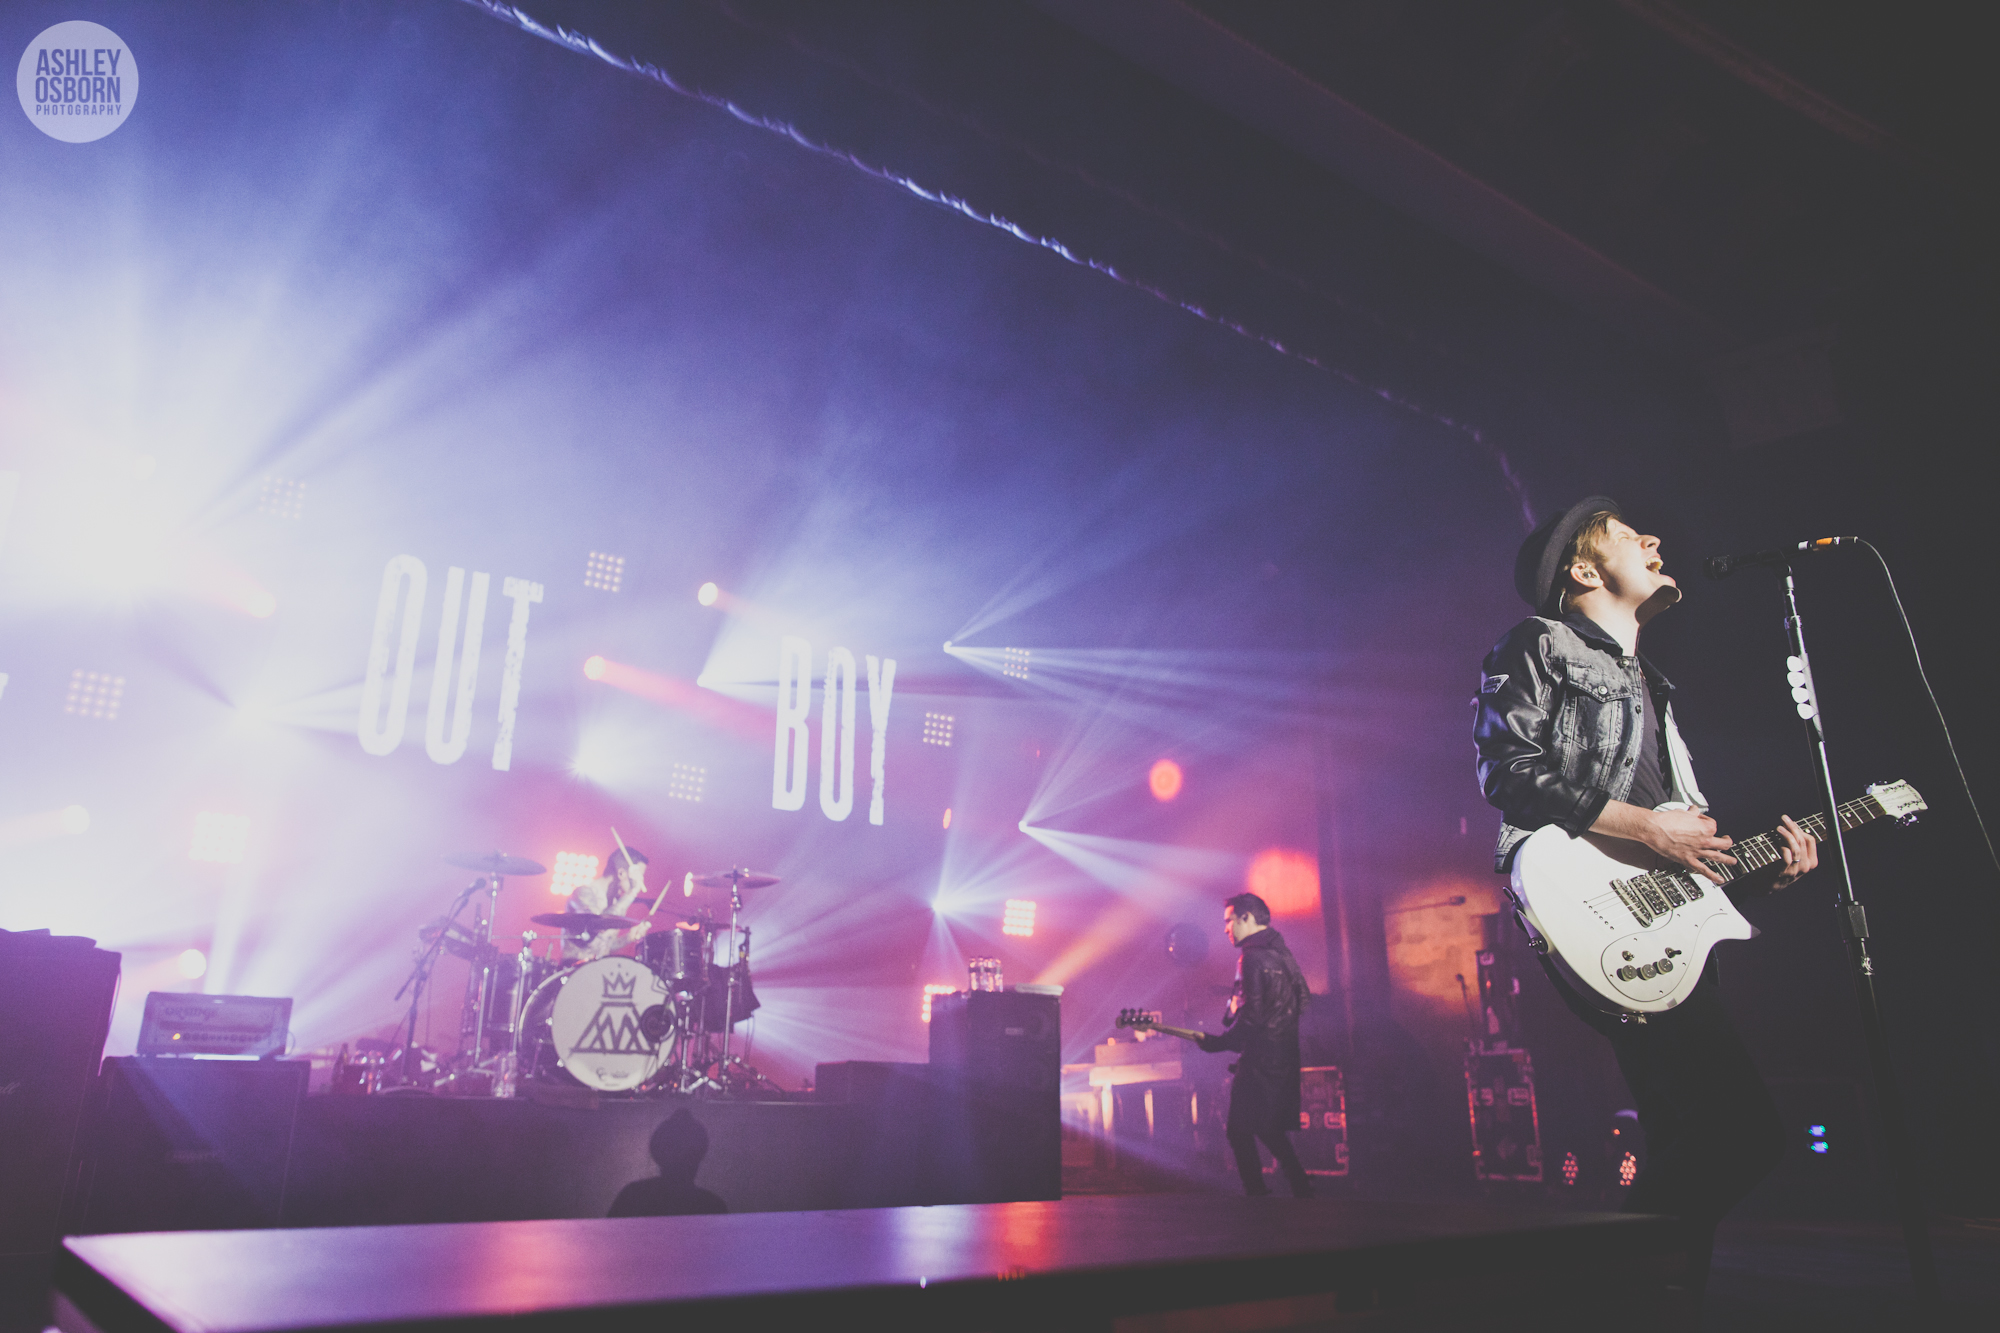 Boy And Girl Wallpaper For Facebook Cover Fall Out Boy The Save Rock And Roll Tour Highlight